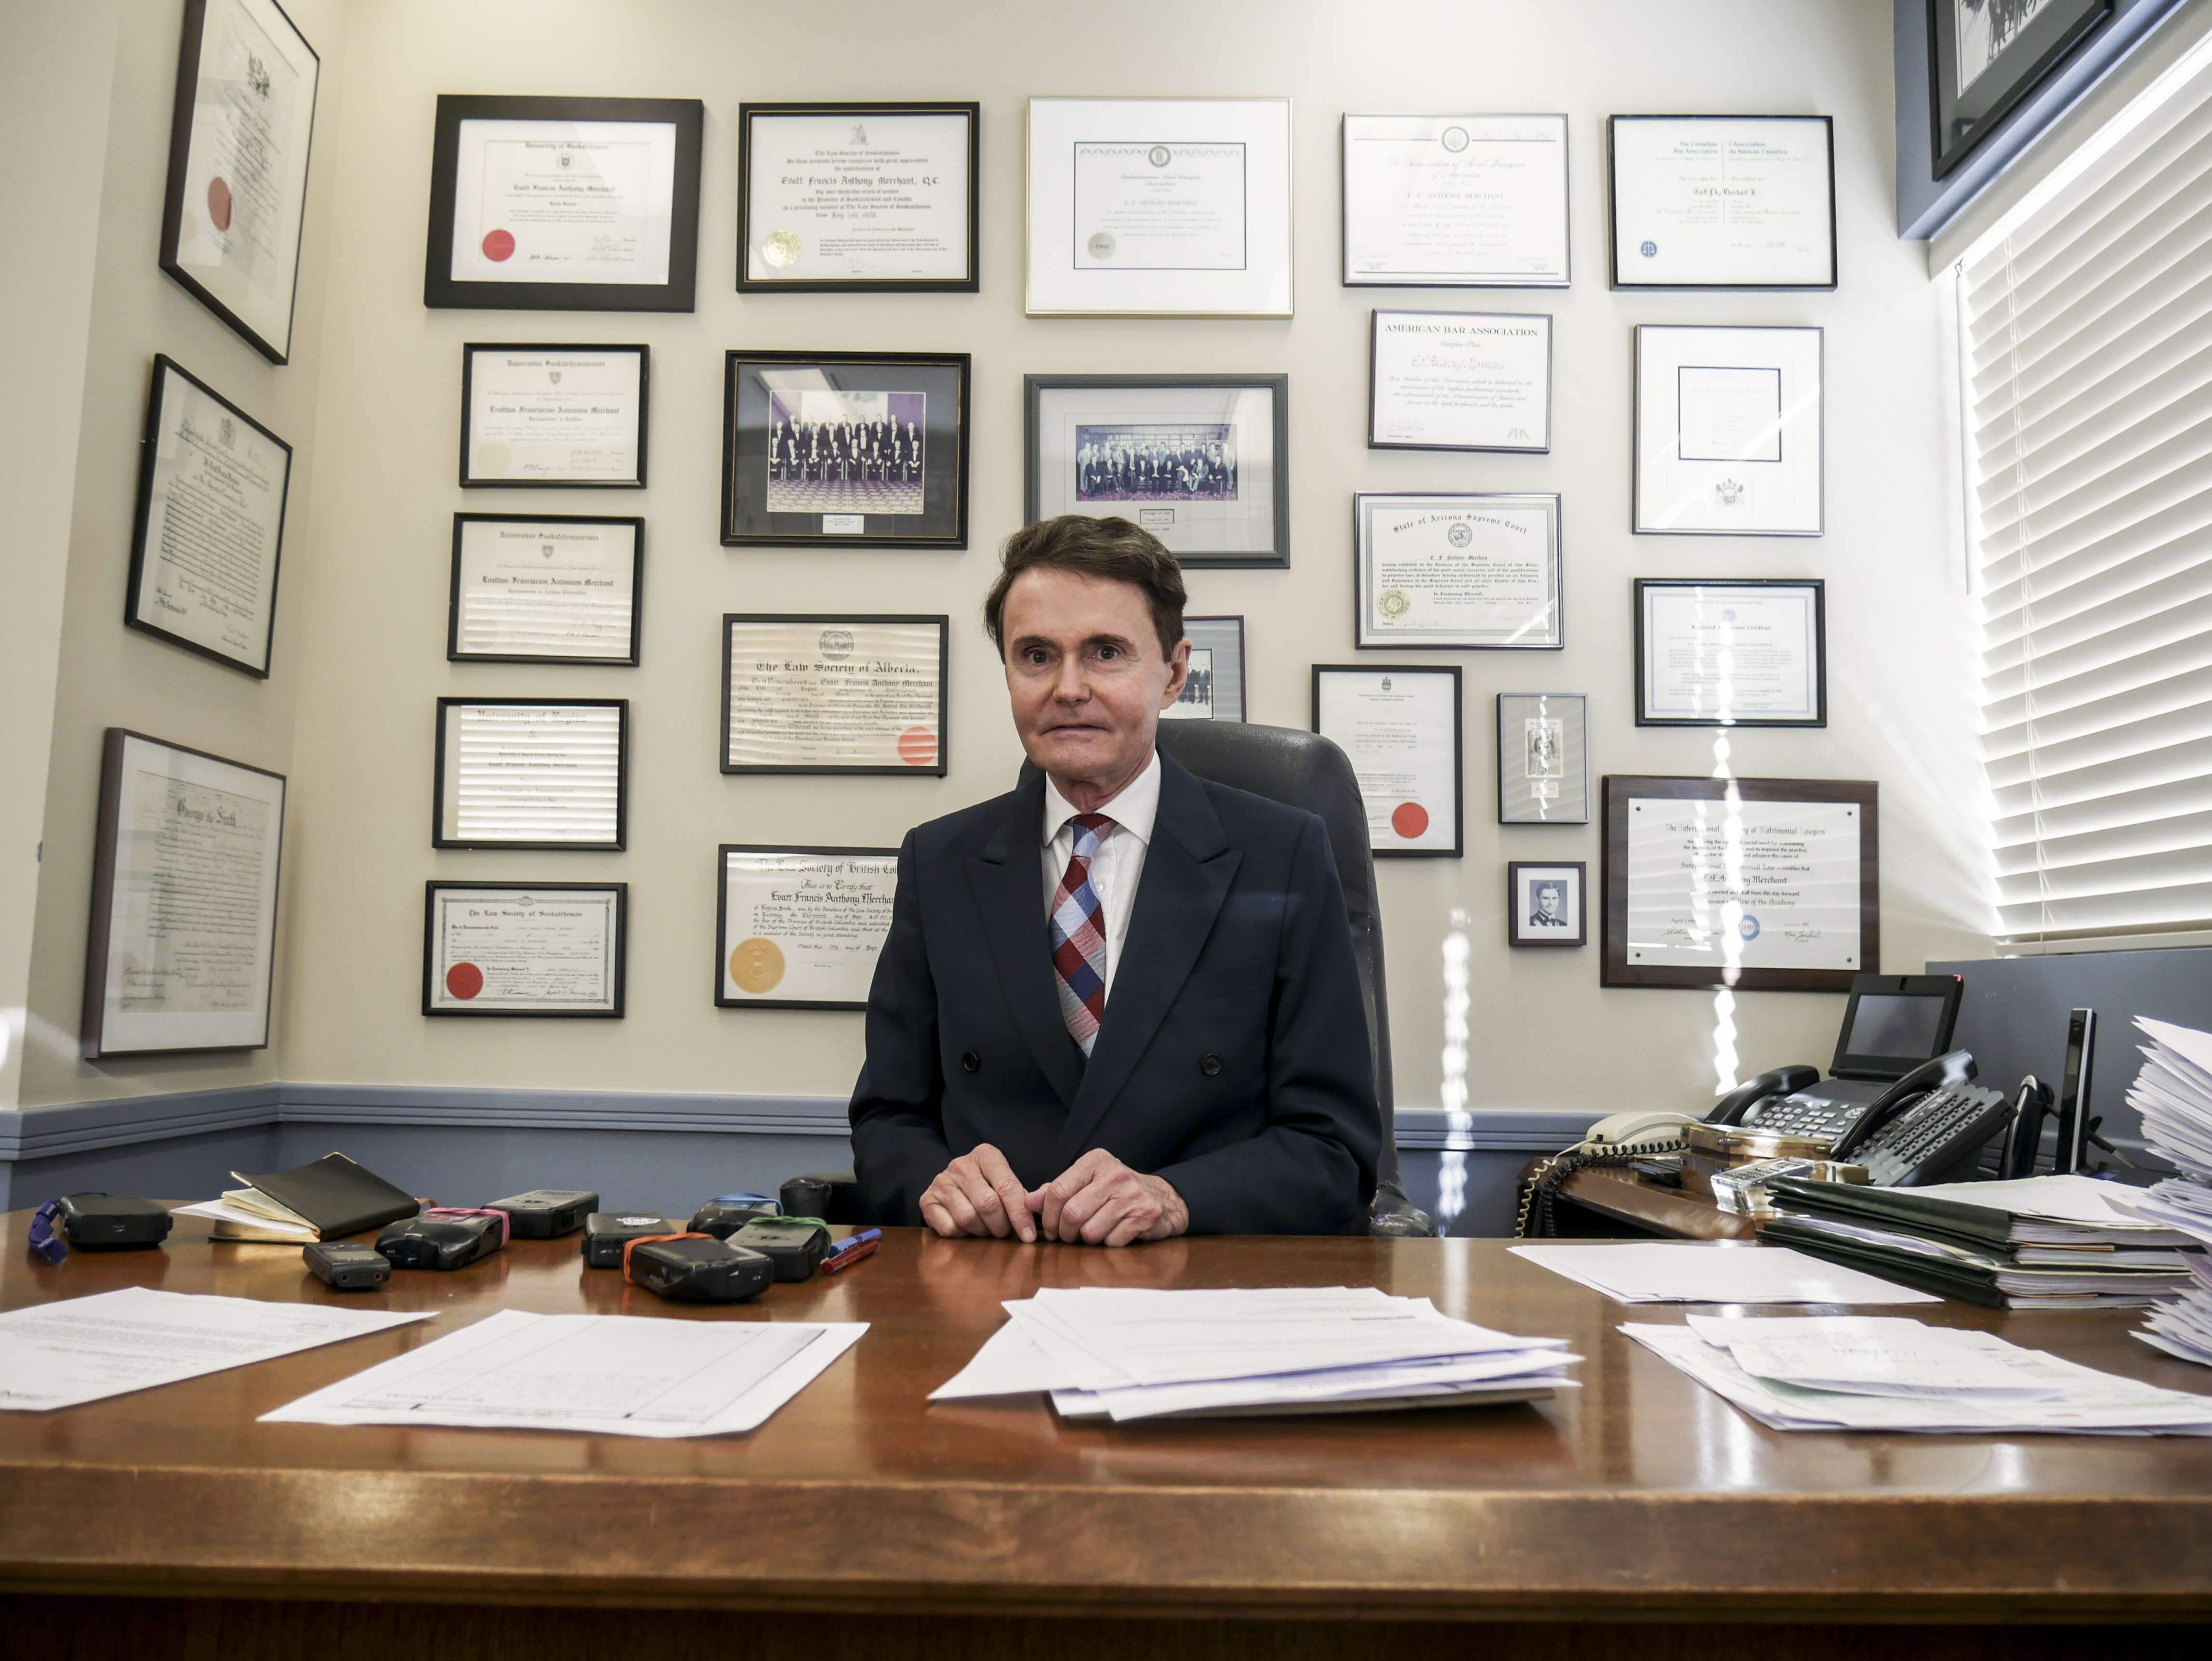 Tony Merchant sits at his desk in the Regina based branch of the Merchant Law Group LLP. From his desk he manages his national legal empire. Photo by Josh Diaz.